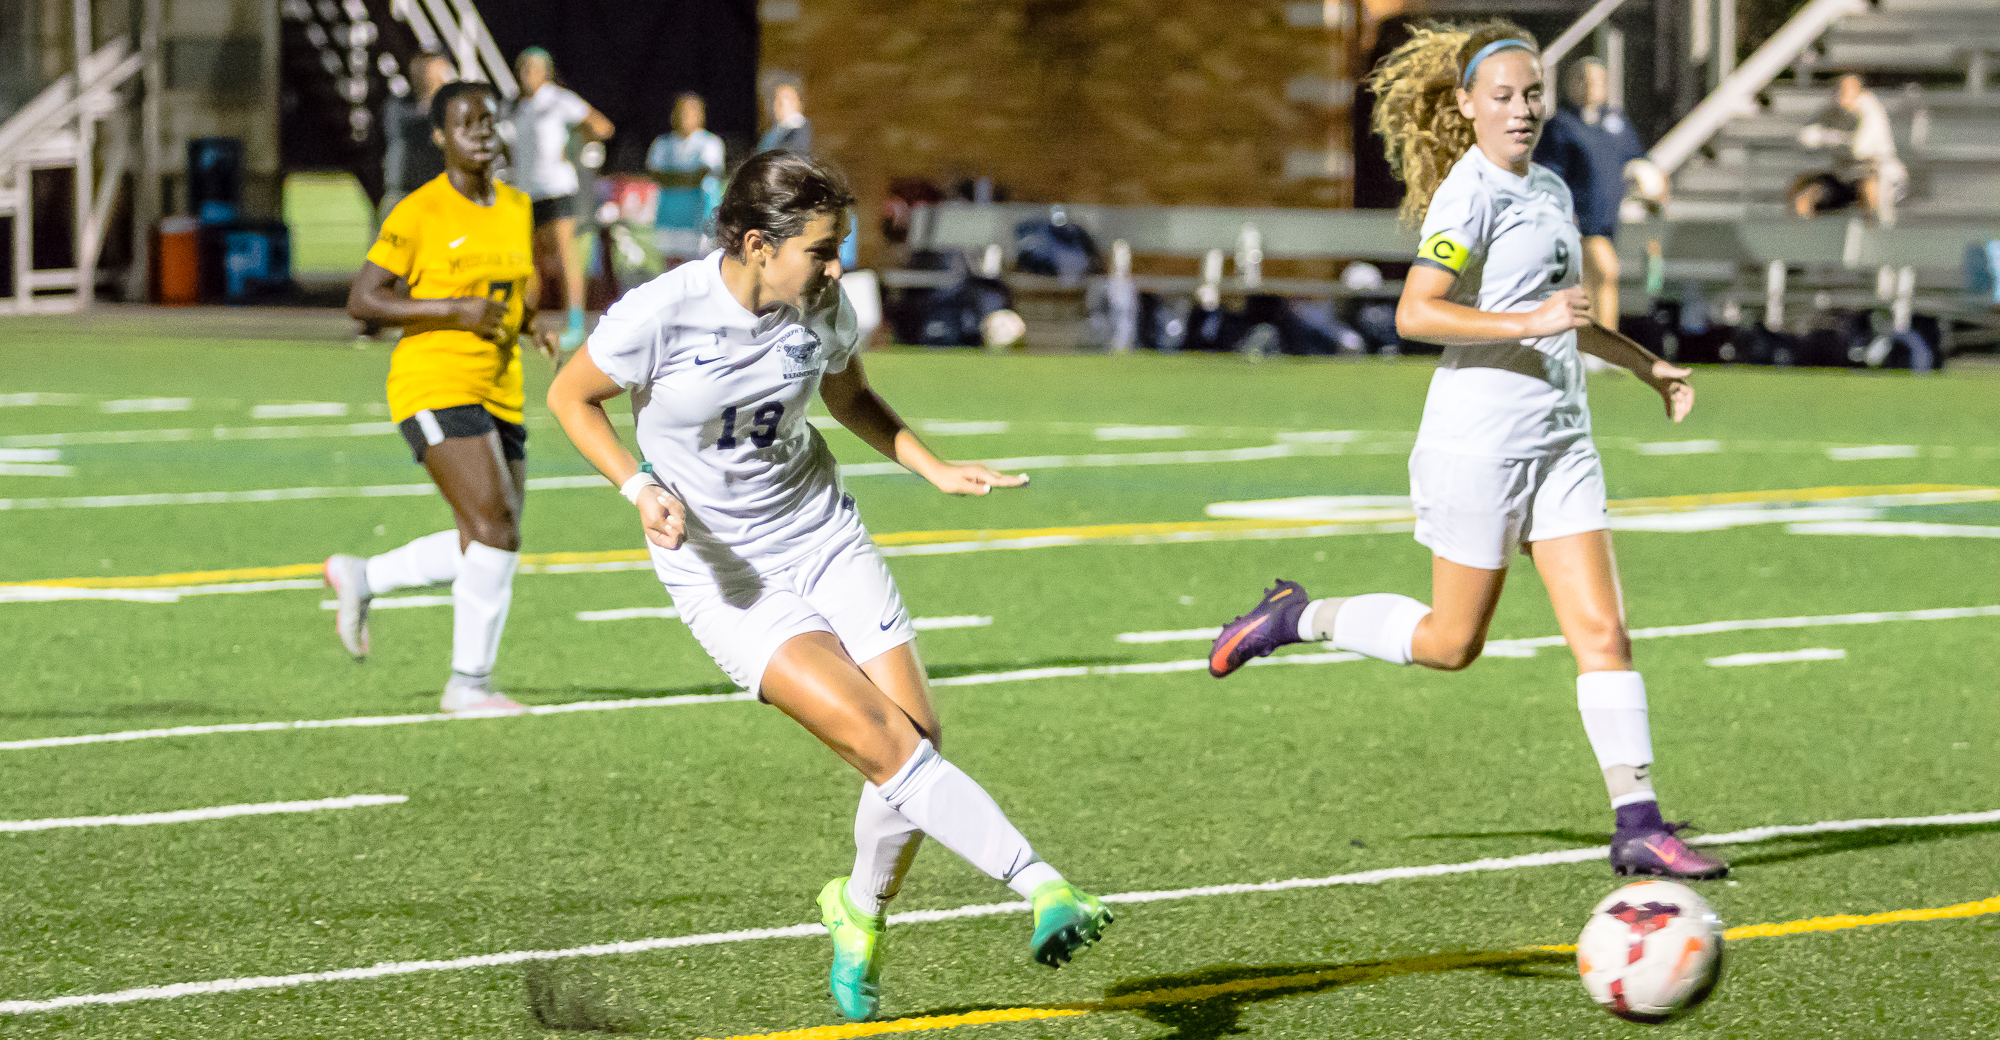 Molic and Sequeira Power Women's Soccer Past Yeshiva in Big Skyline Victory